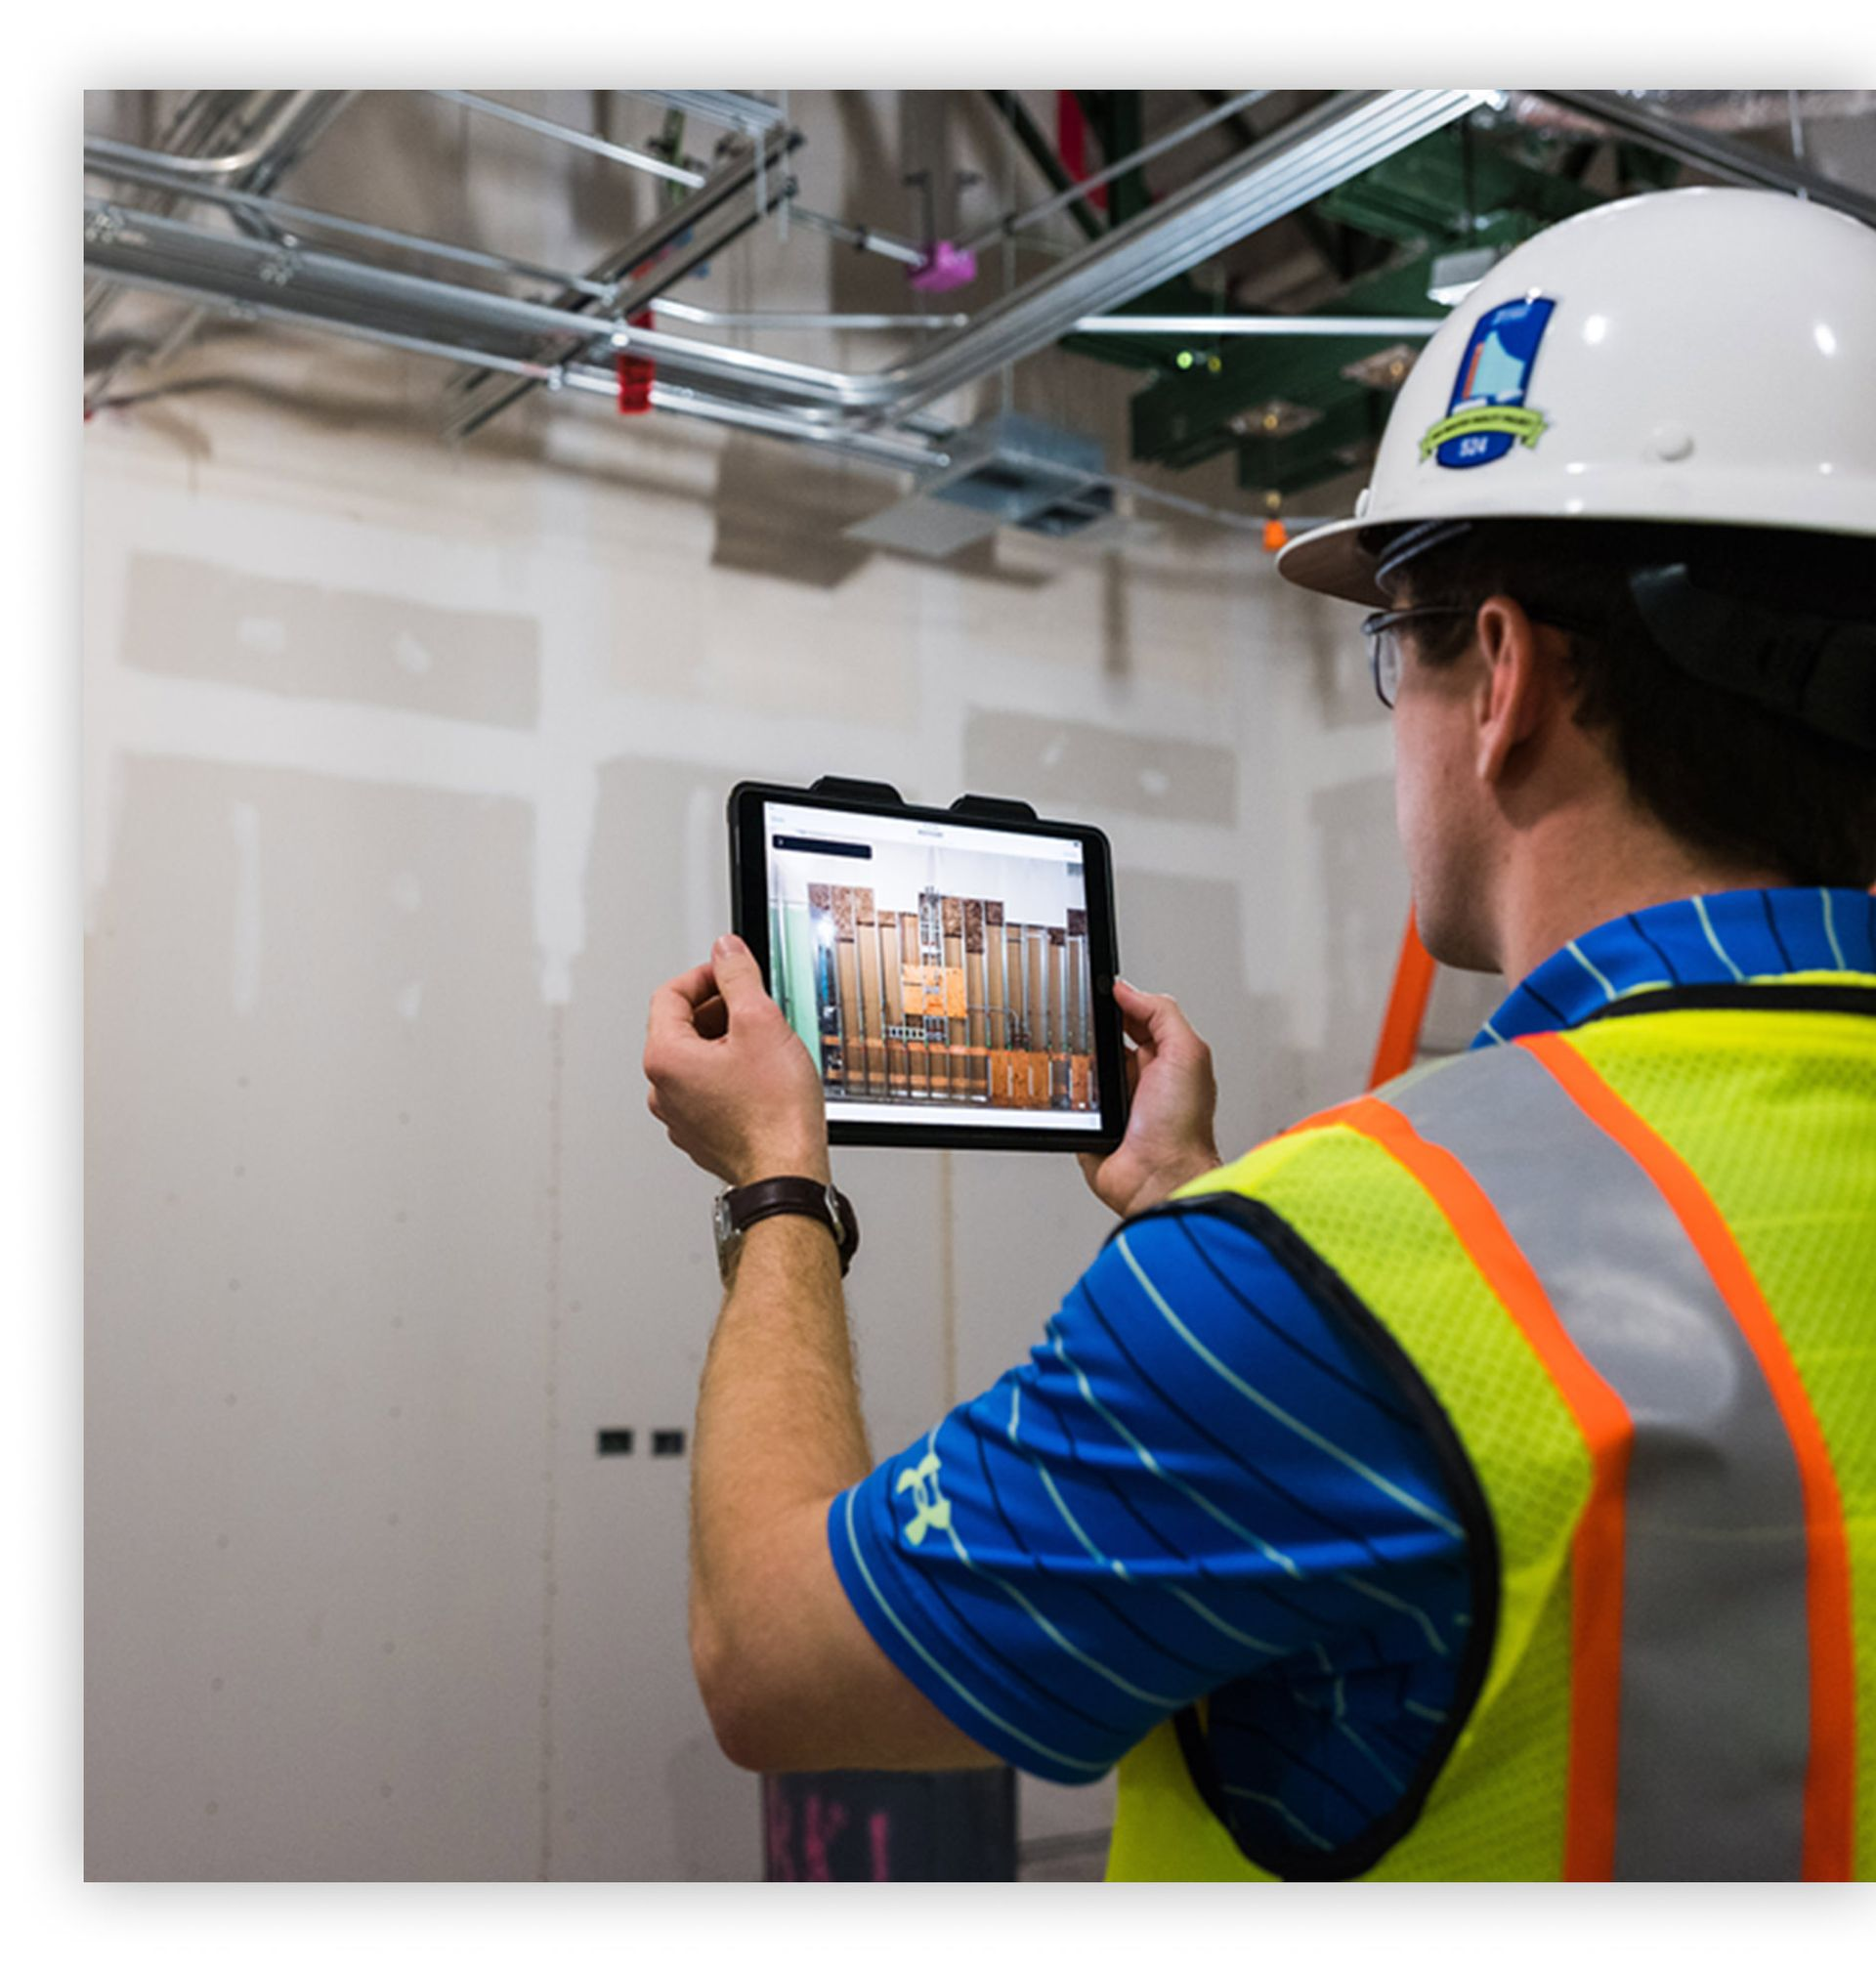 Autodesk used on drywall, painting, floors, finishing construction projects